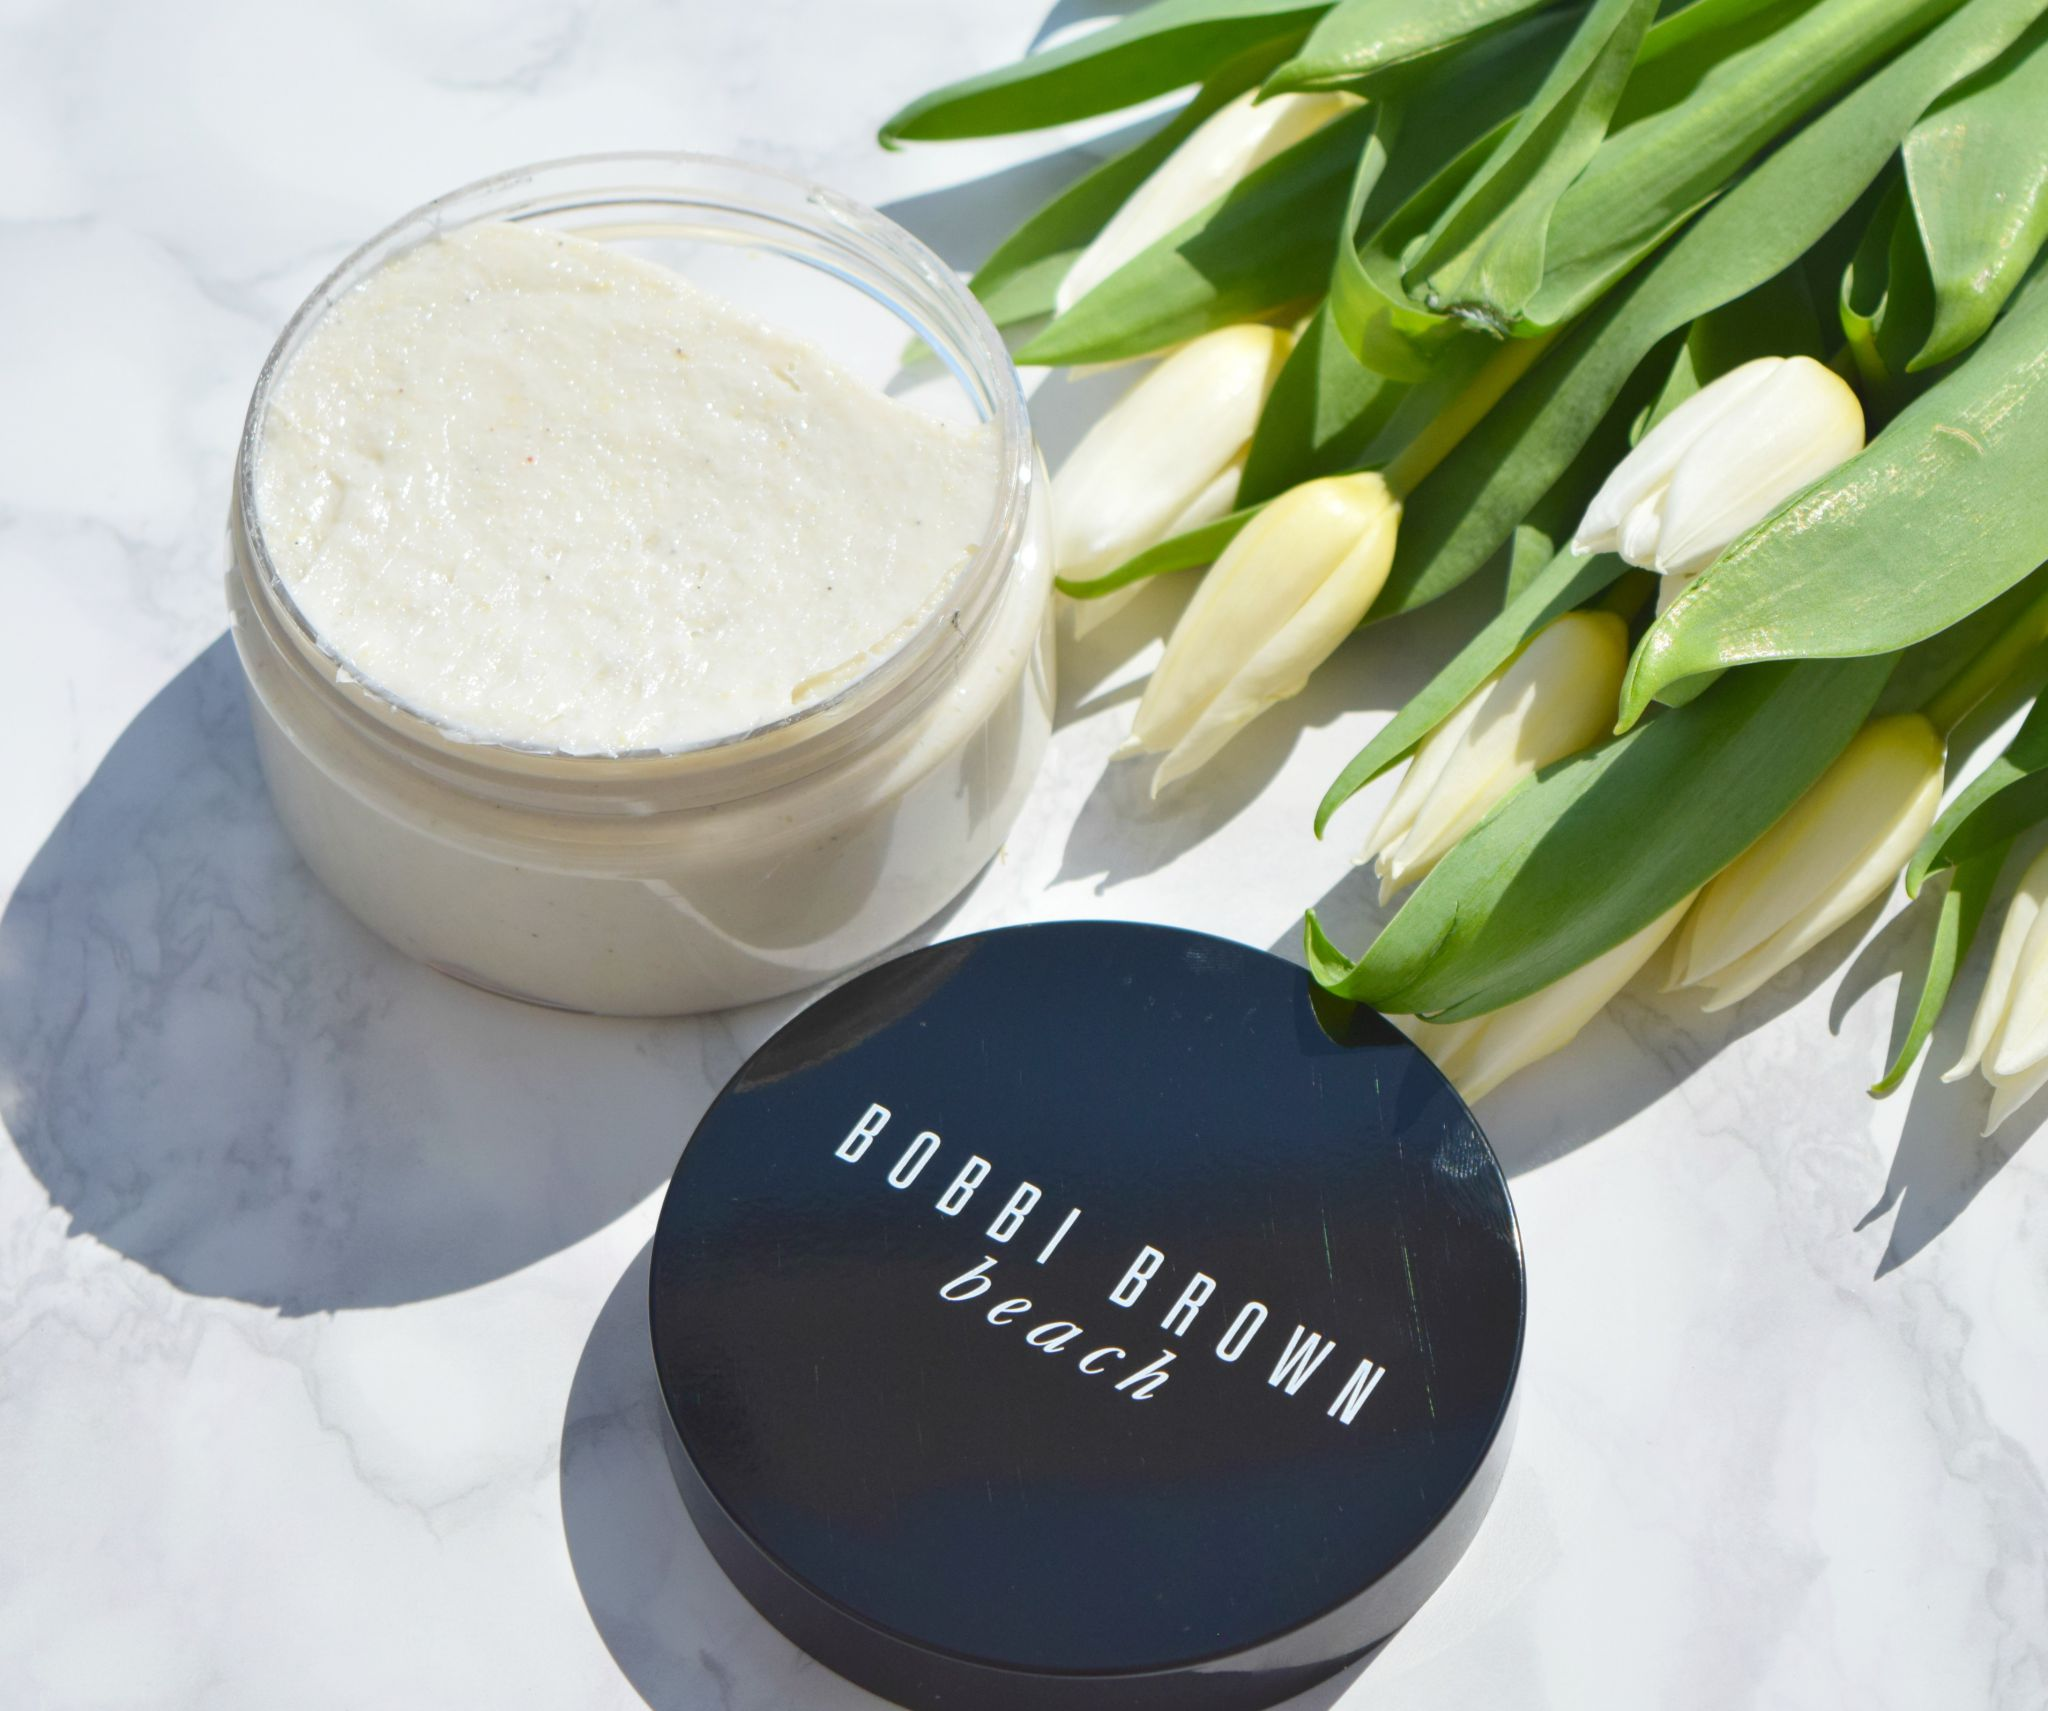 Bobbi Brown Beach Body Scrub 2